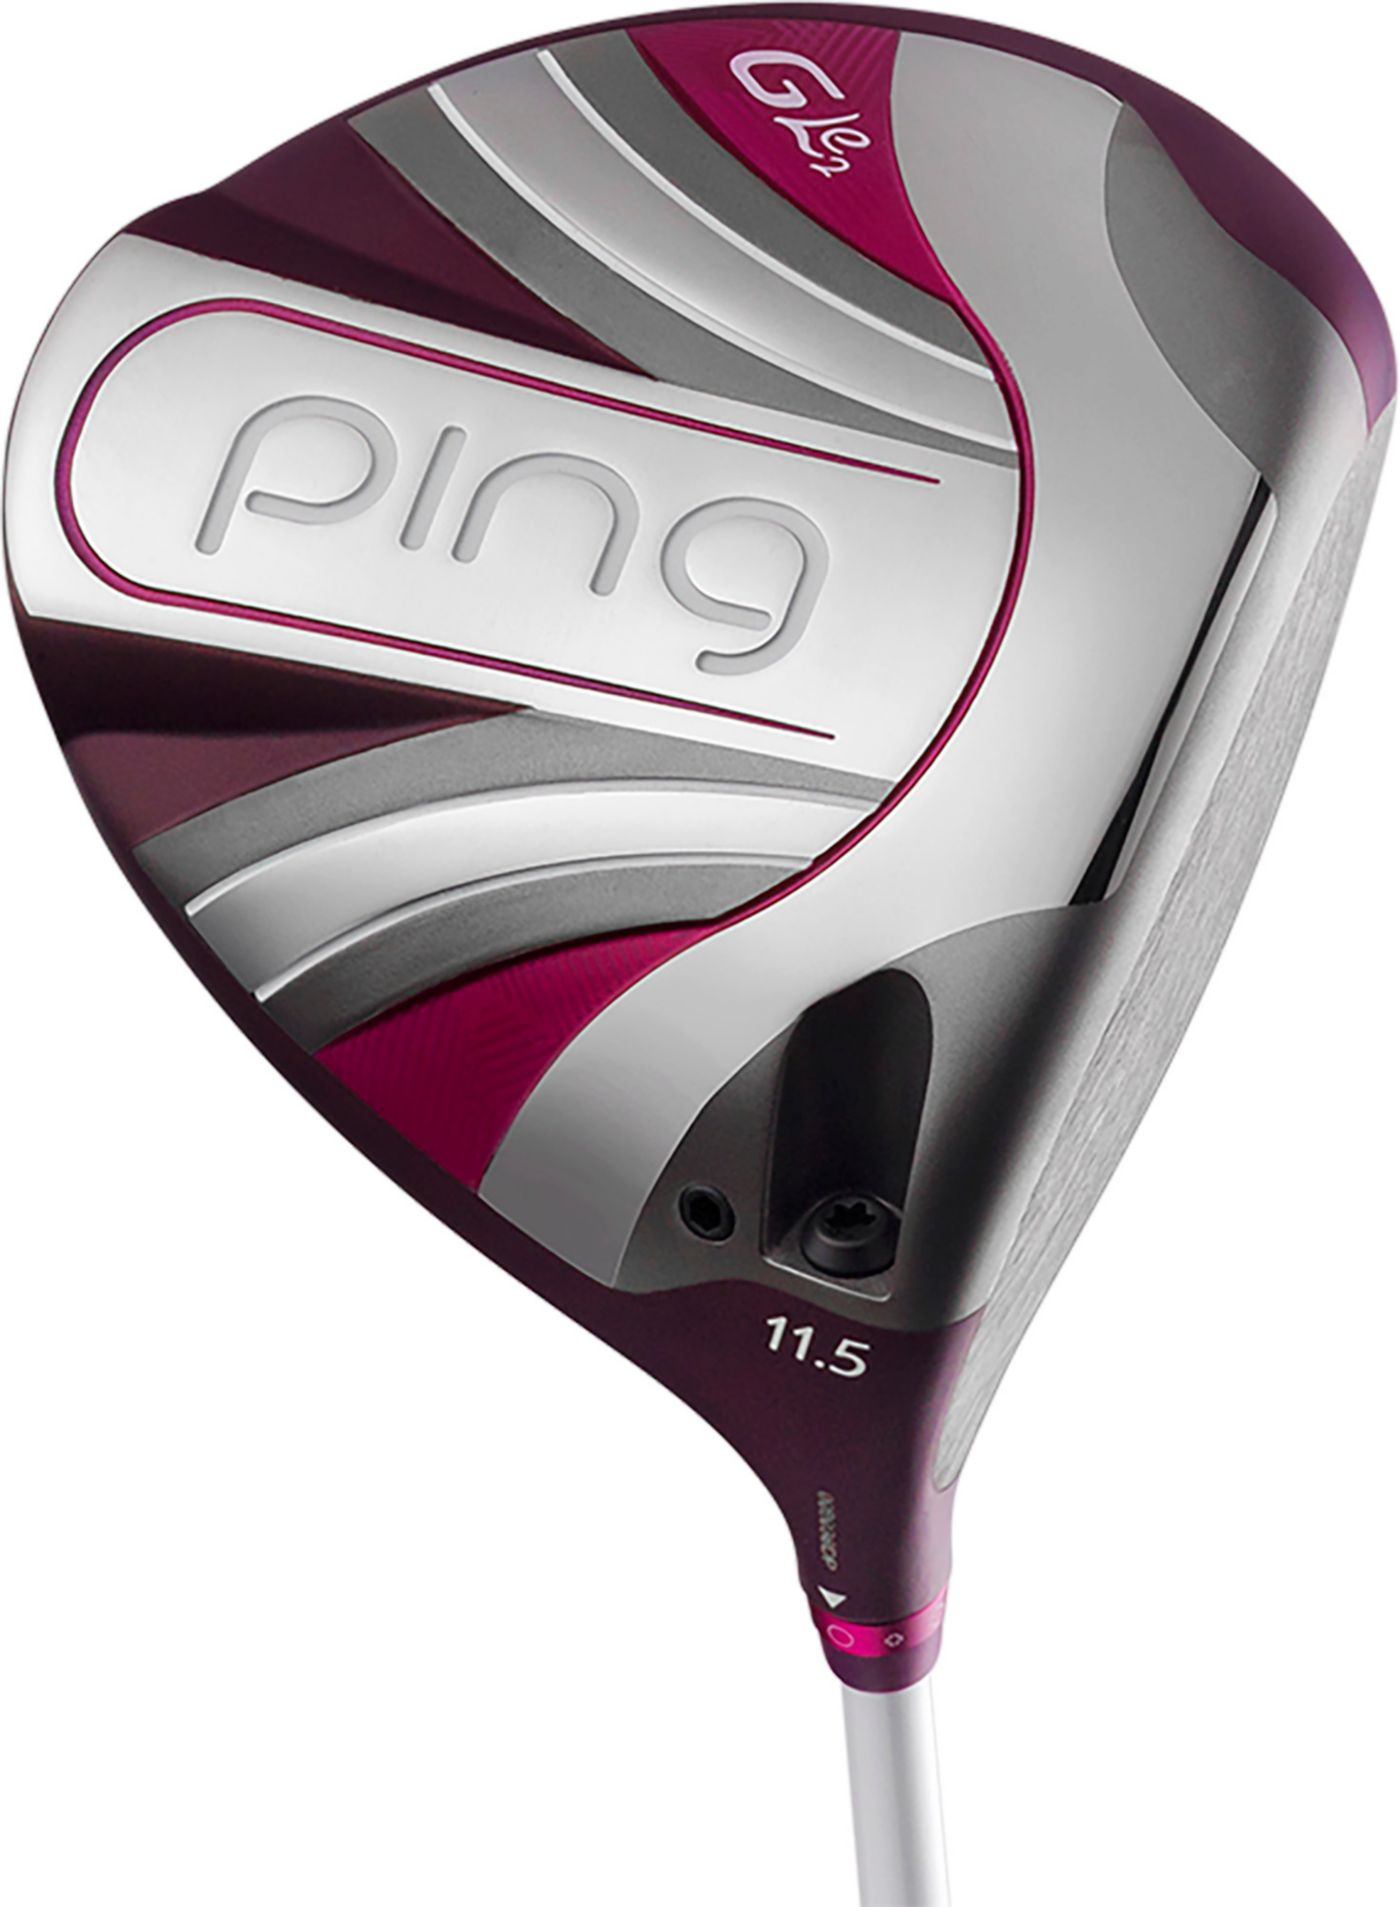 PING Women's G Le 2.0 Driver